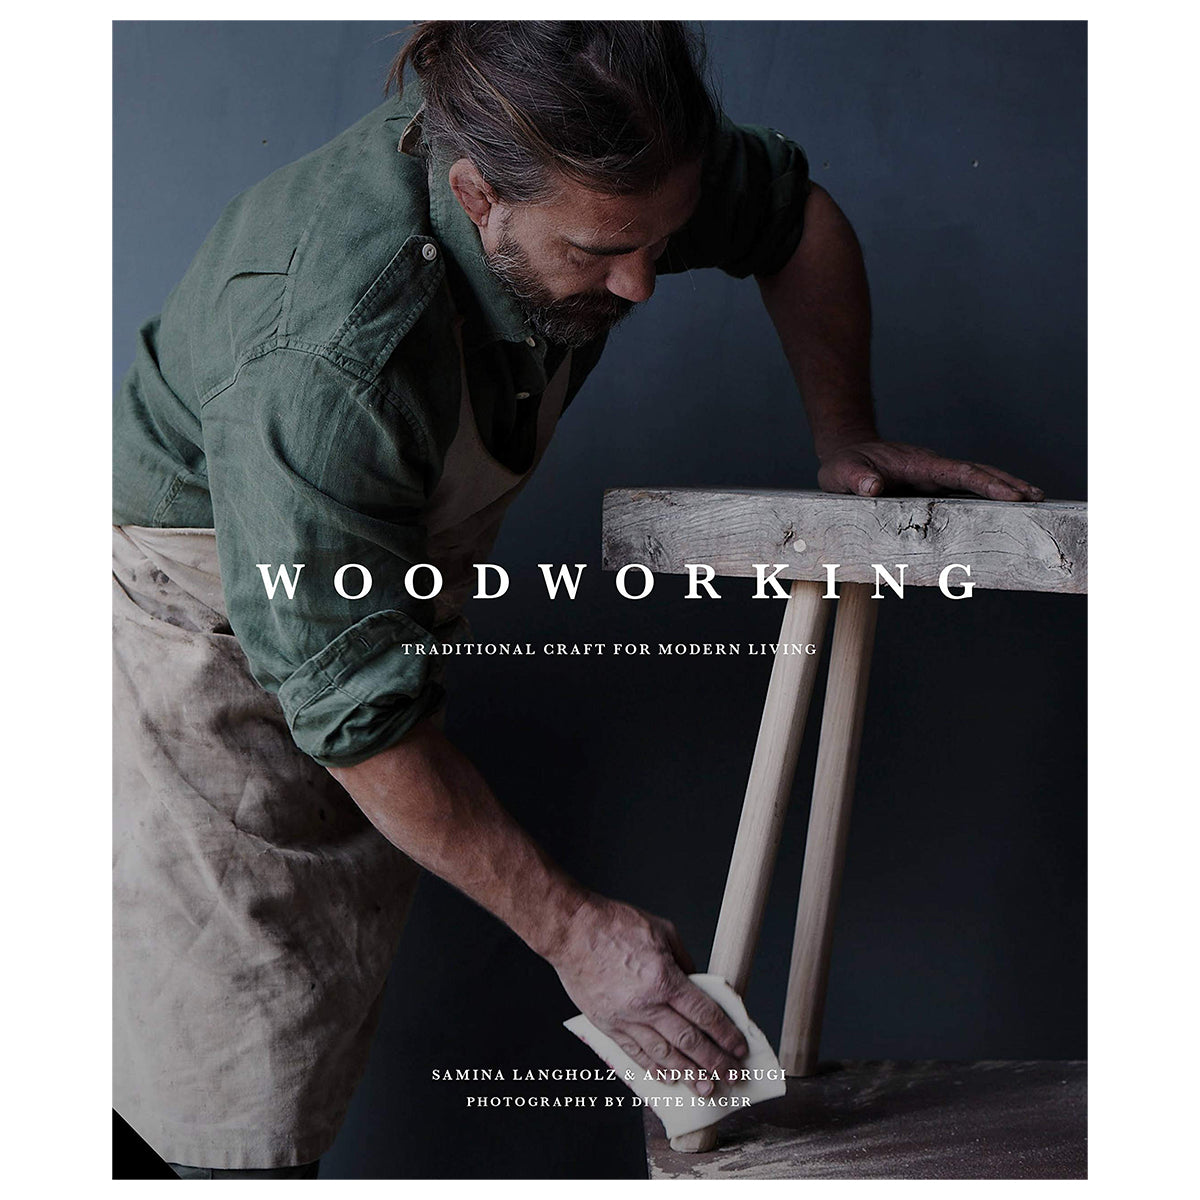 Woodworking, Traditional Craft for Modern Living